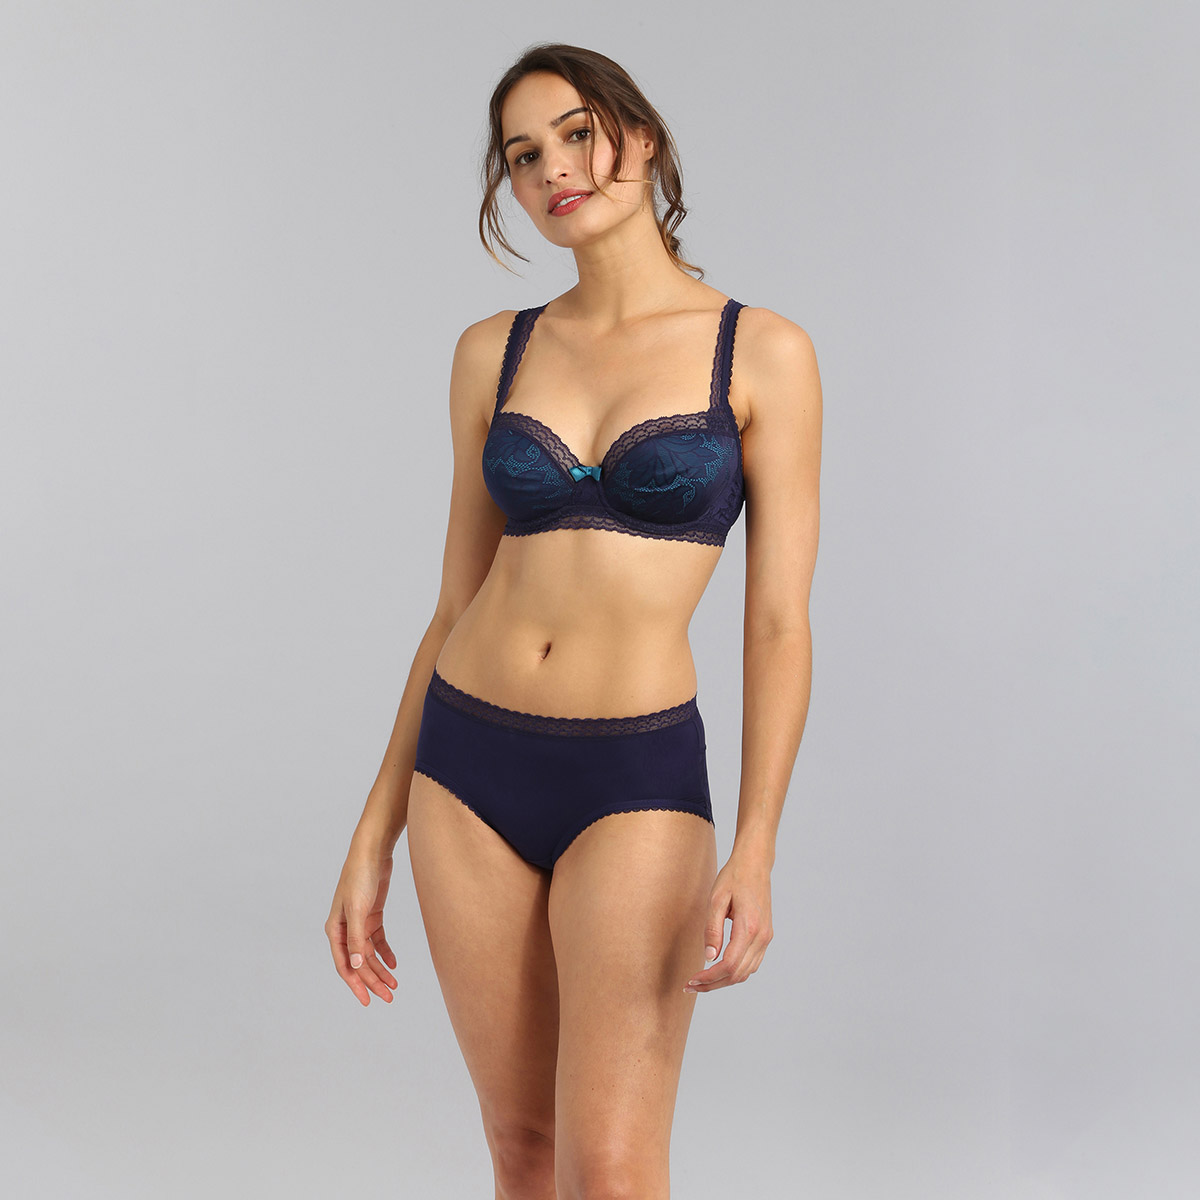 Midi knickers in navy blue Invisible Elegance, , PLAYTEX